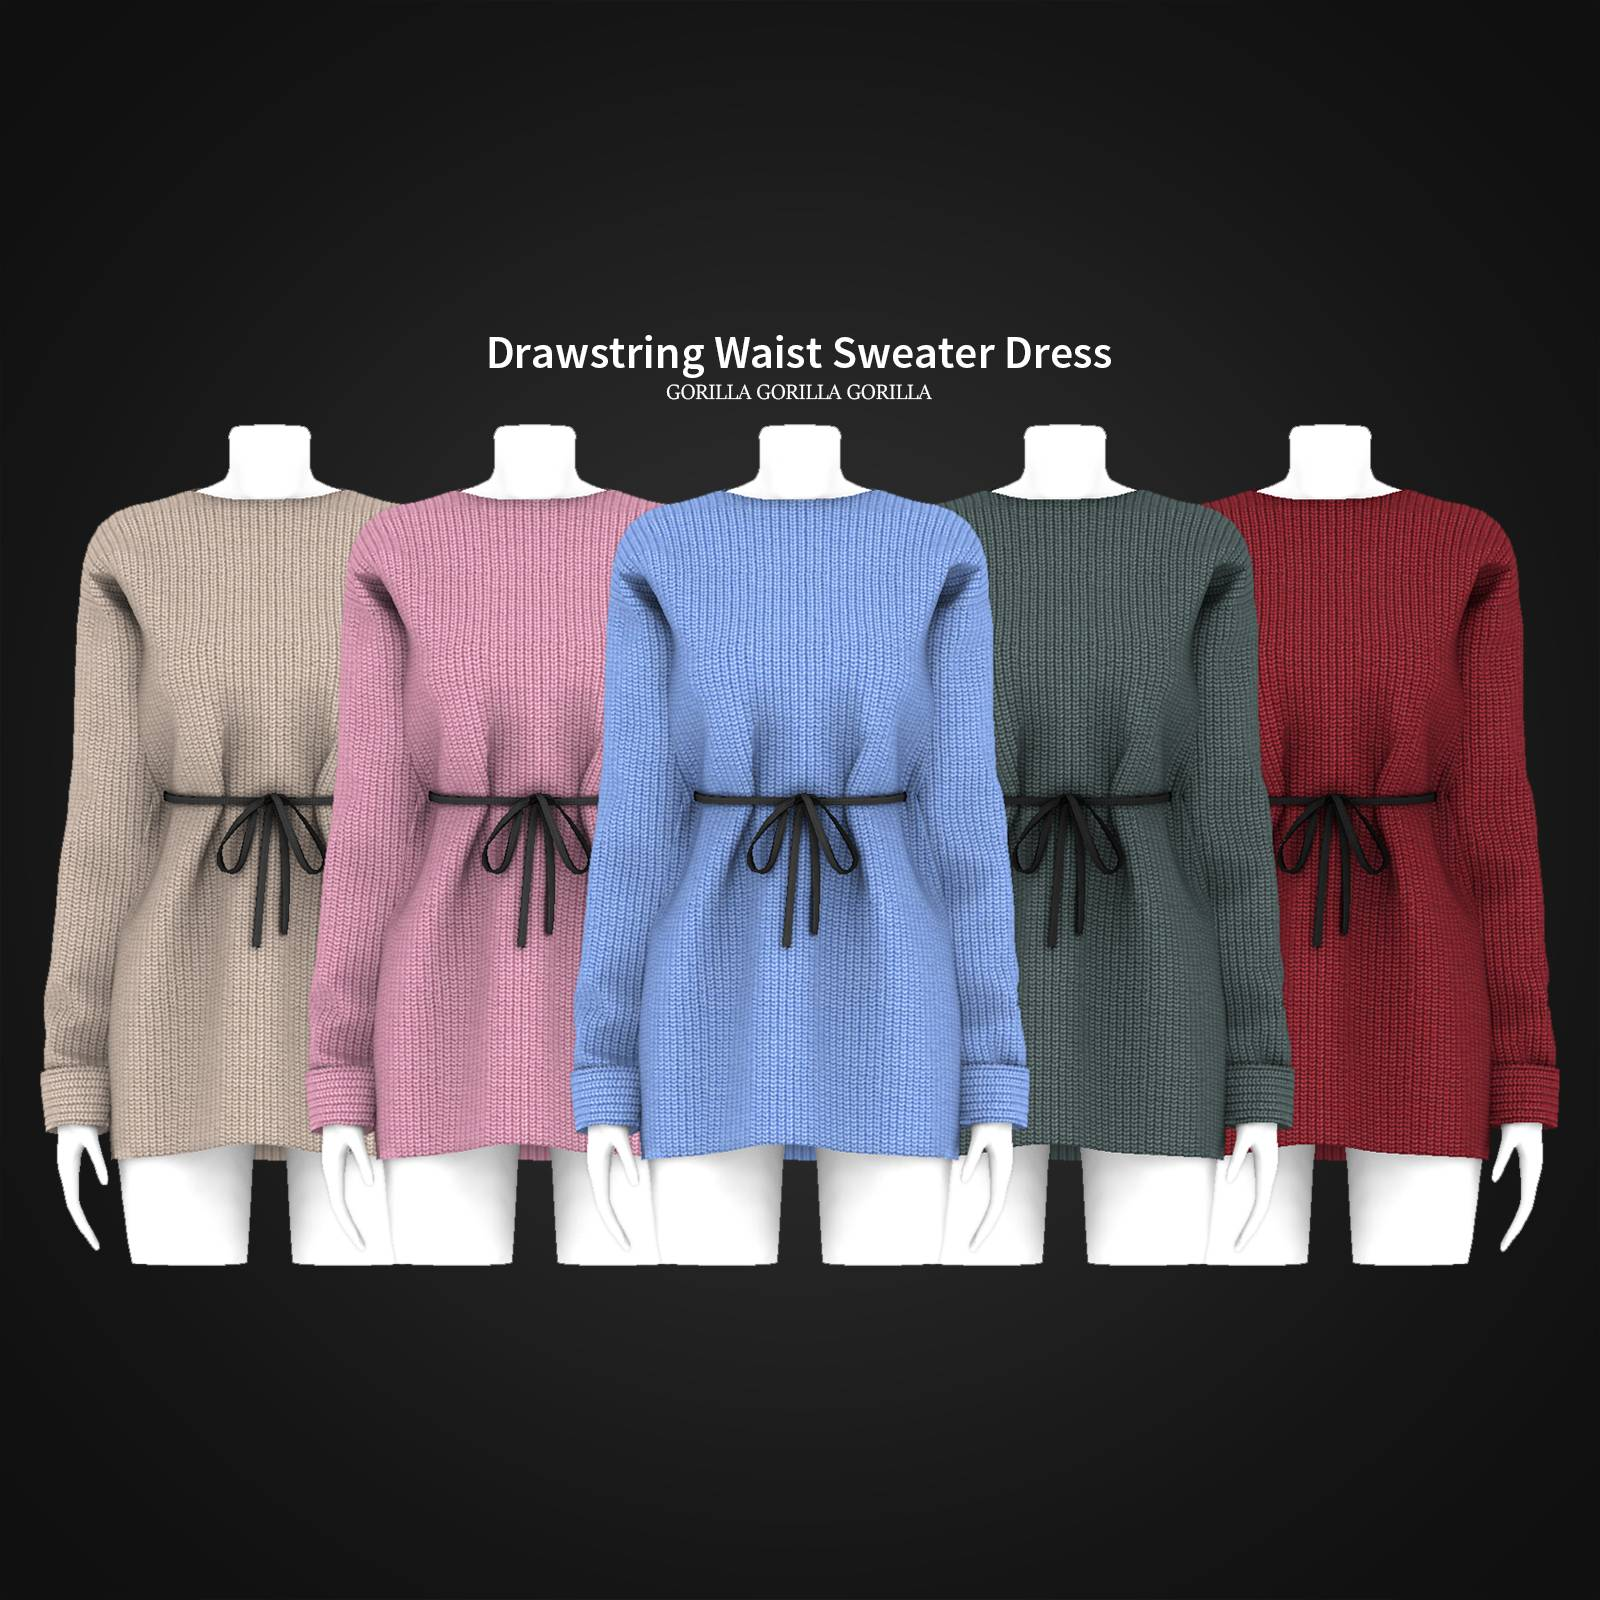 Платье - Drawstring Waist Sweater Dress